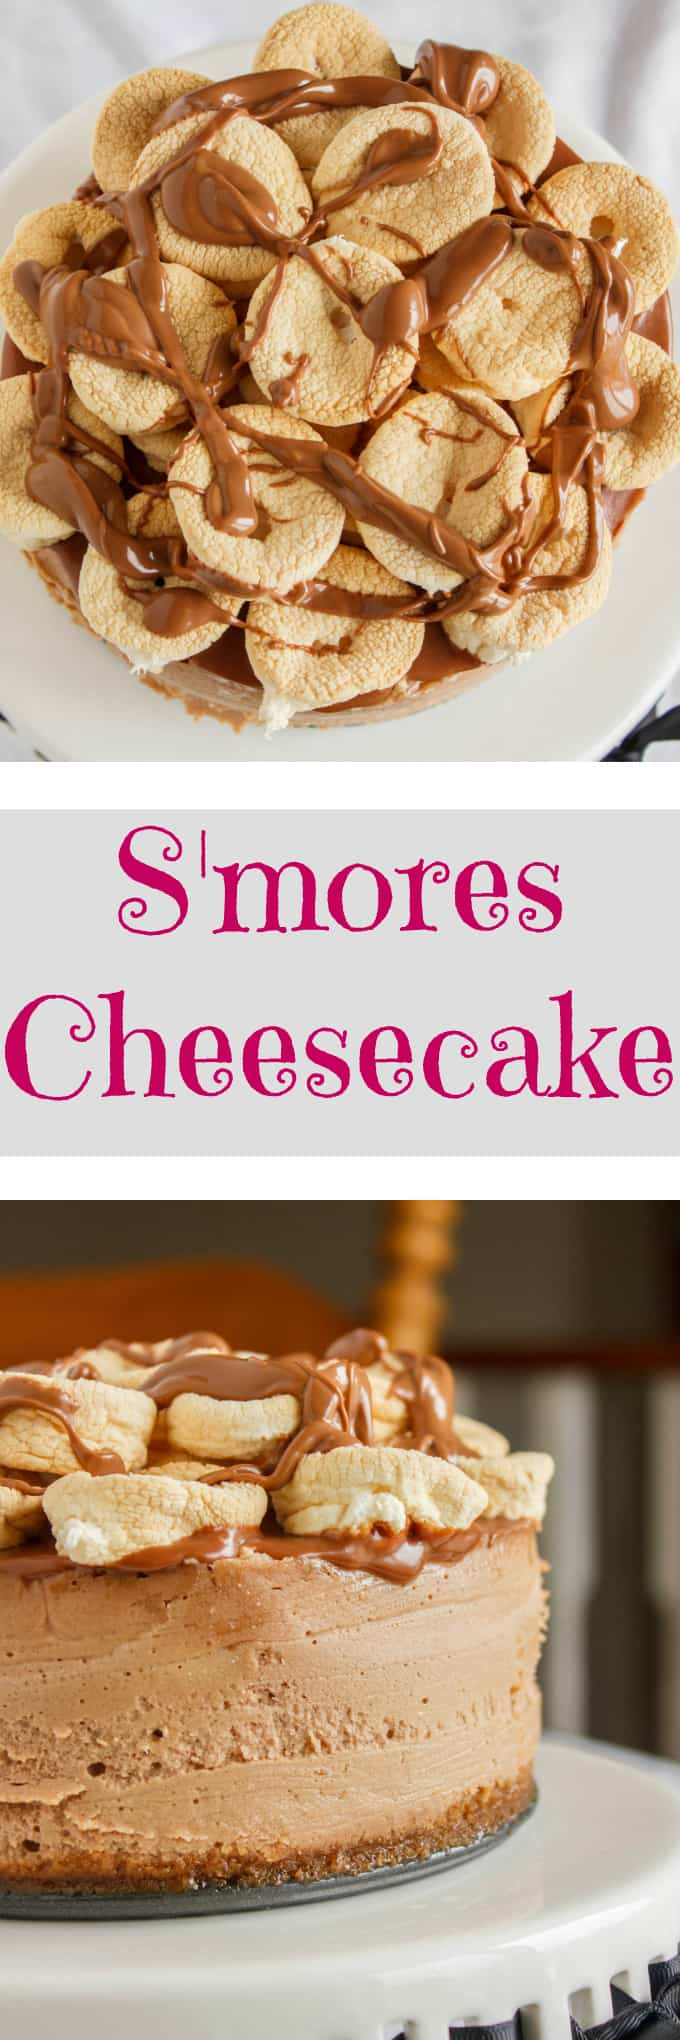 S'mores Cheesecake 4